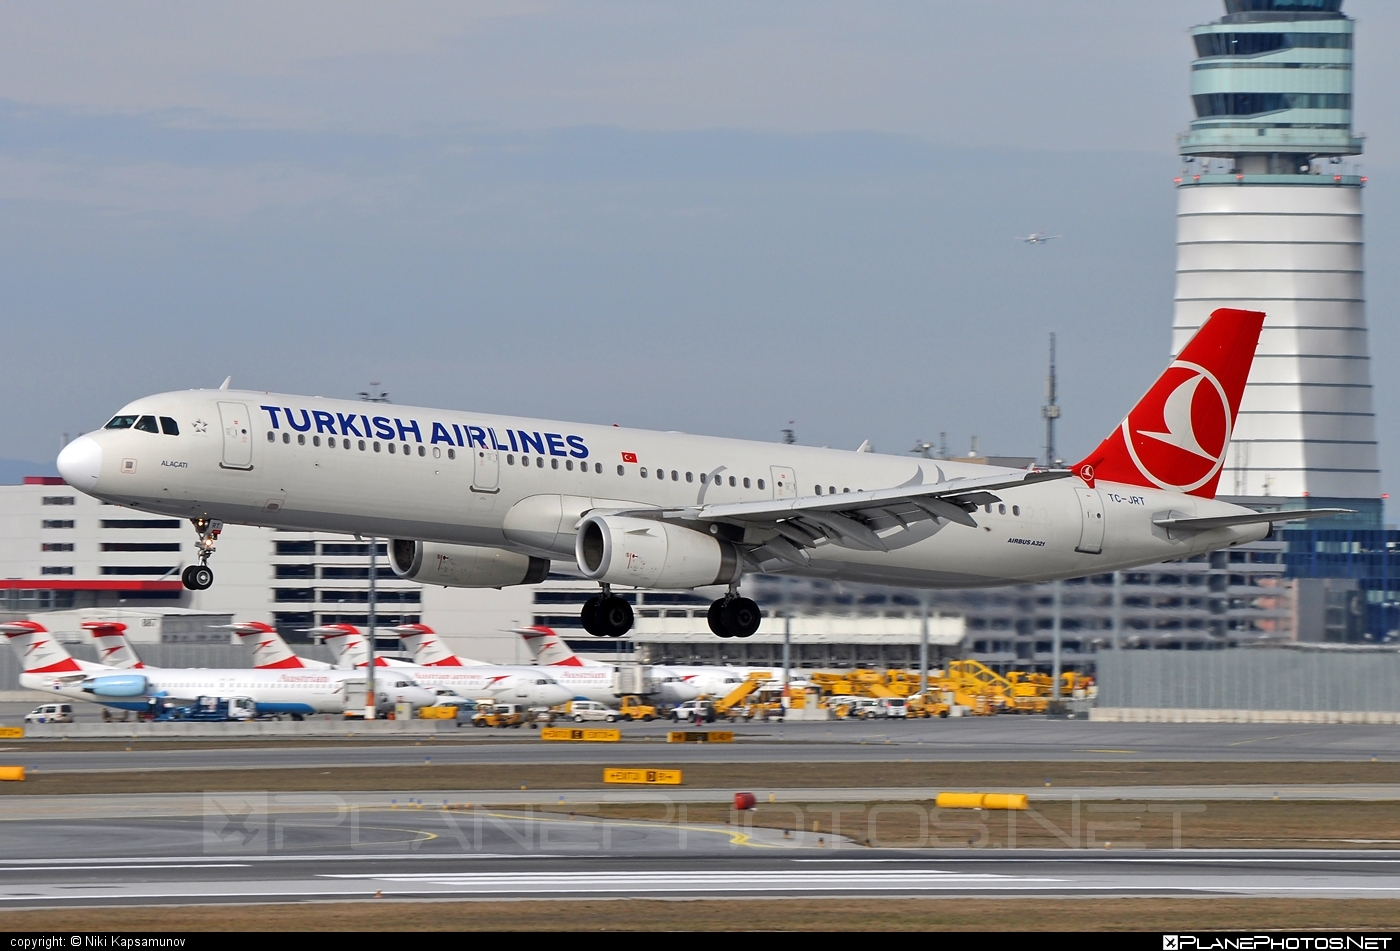 Airbus A321-231 - TC-JRT operated by Turkish Airlines #a320family #a321 #airbus #airbus321 #turkishairlines